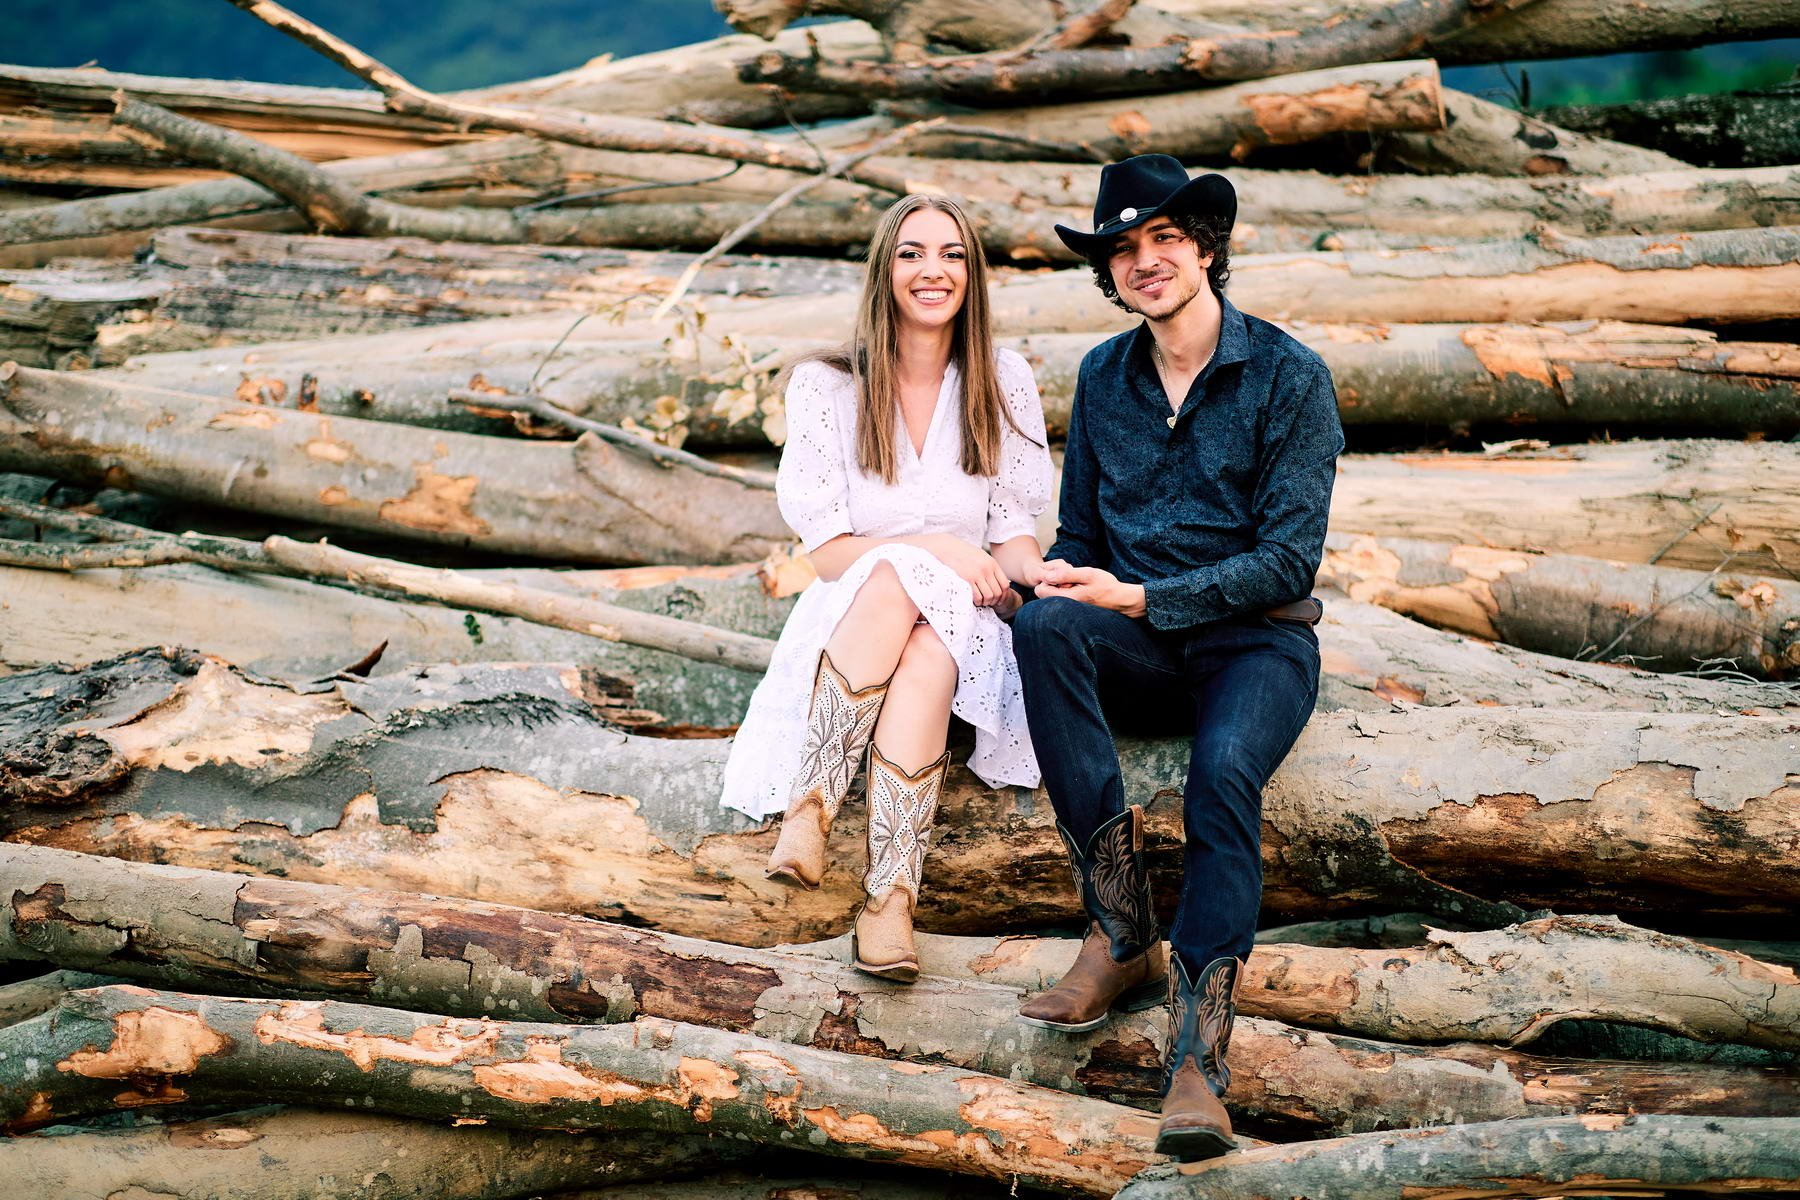 Western Save The Date Photoshoot (64)